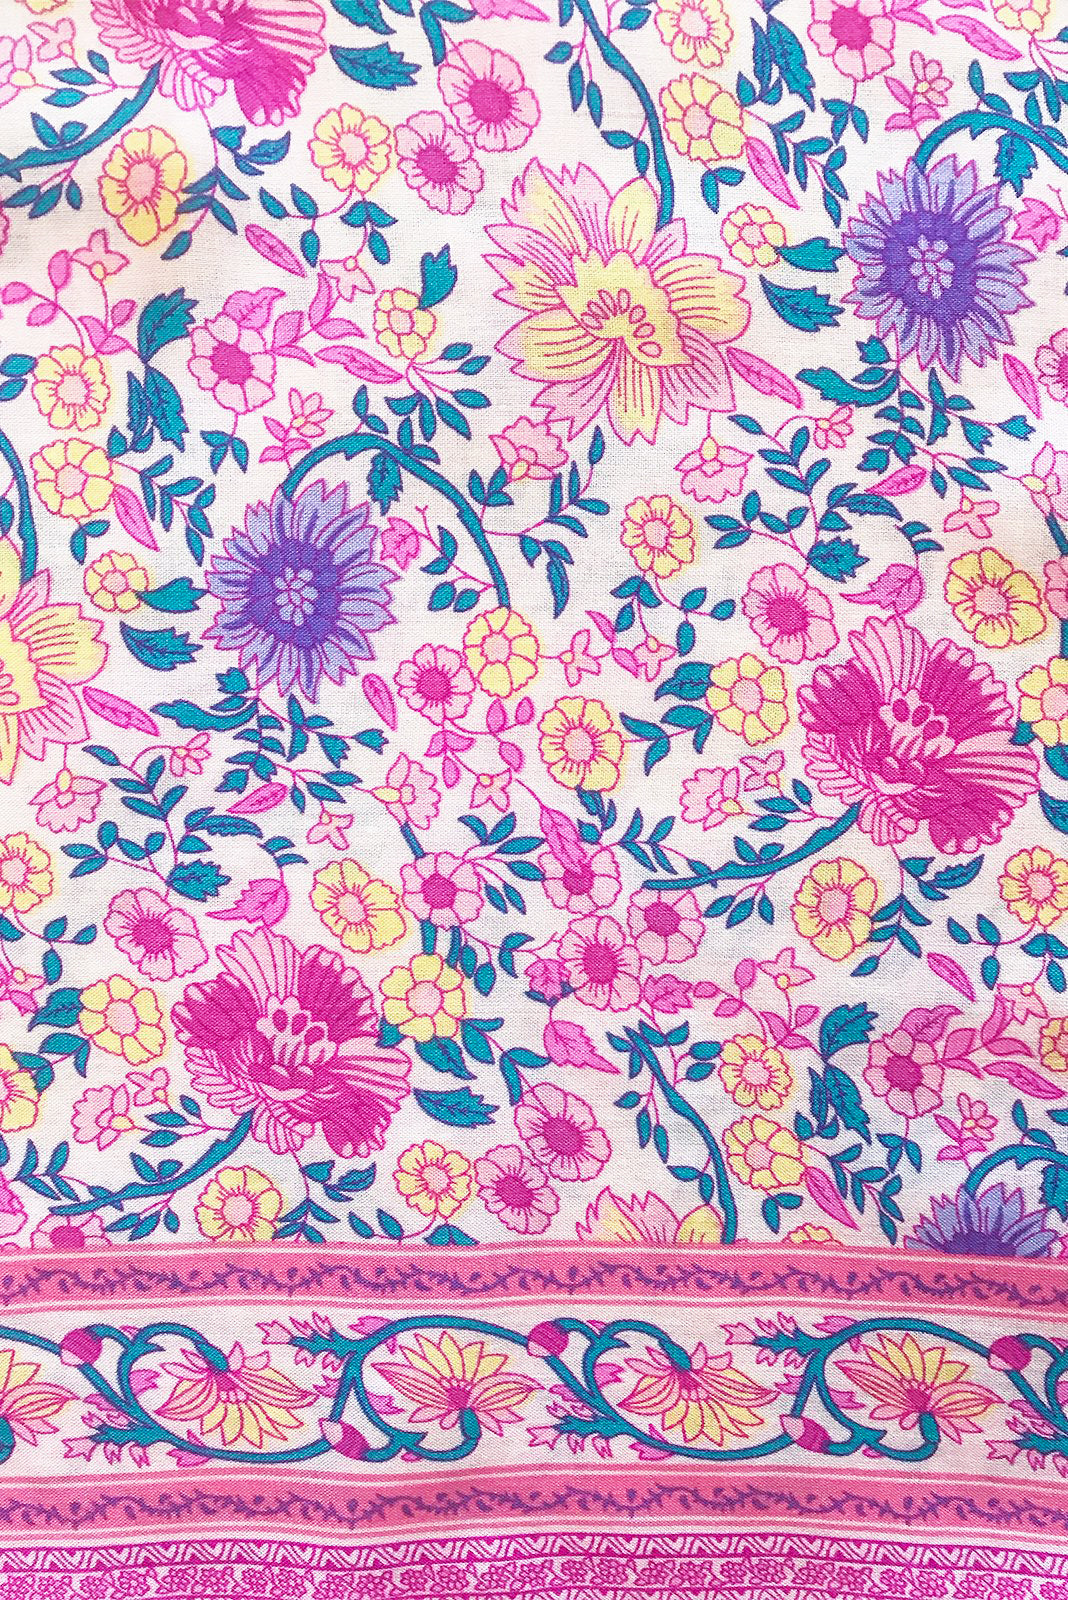 Fabric swatch, 100% woven viscose, soft pink base with medium fuchsia, soft pink, purple, lavender, yellow and teal floral print.